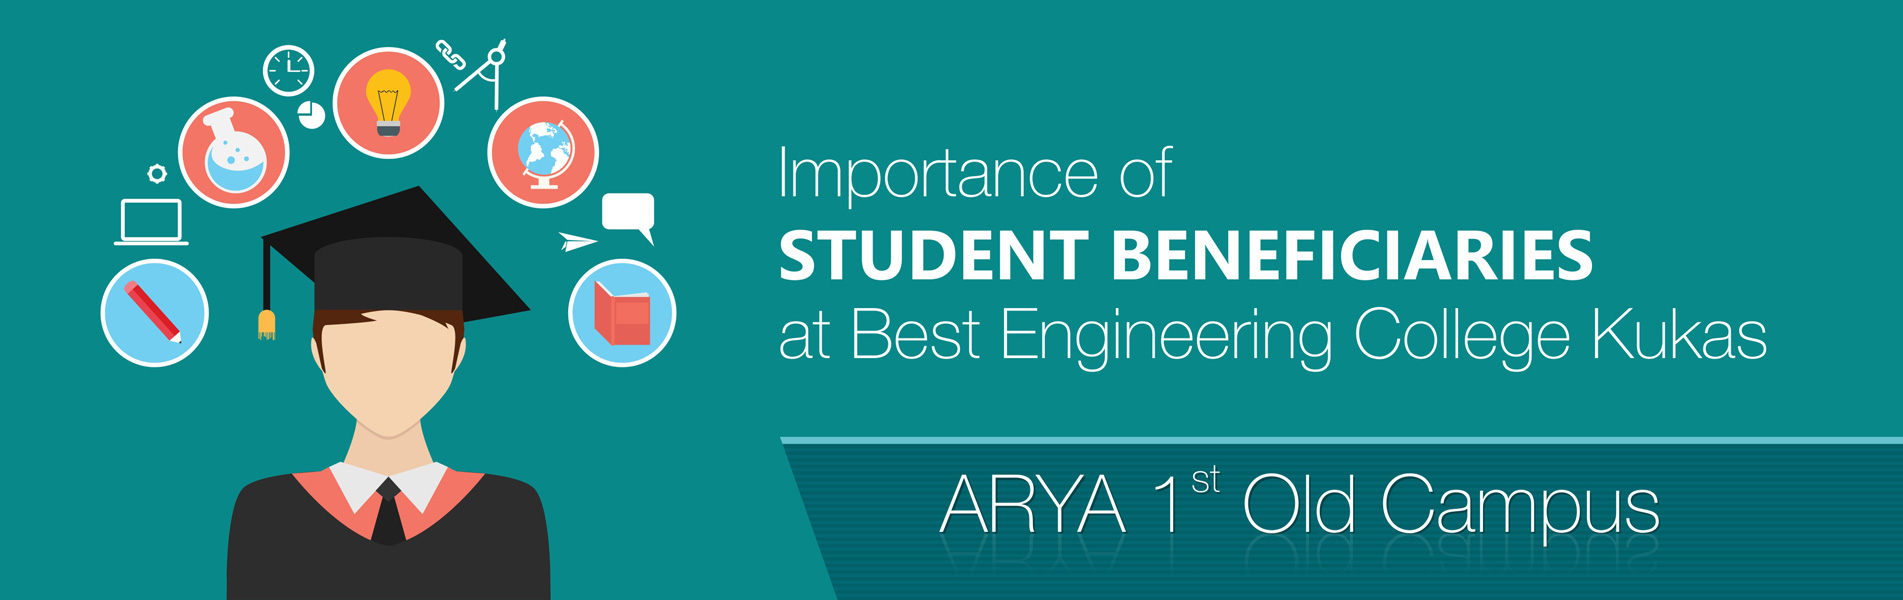 Importance of student beneficiaries at Best Engineering College Kukas